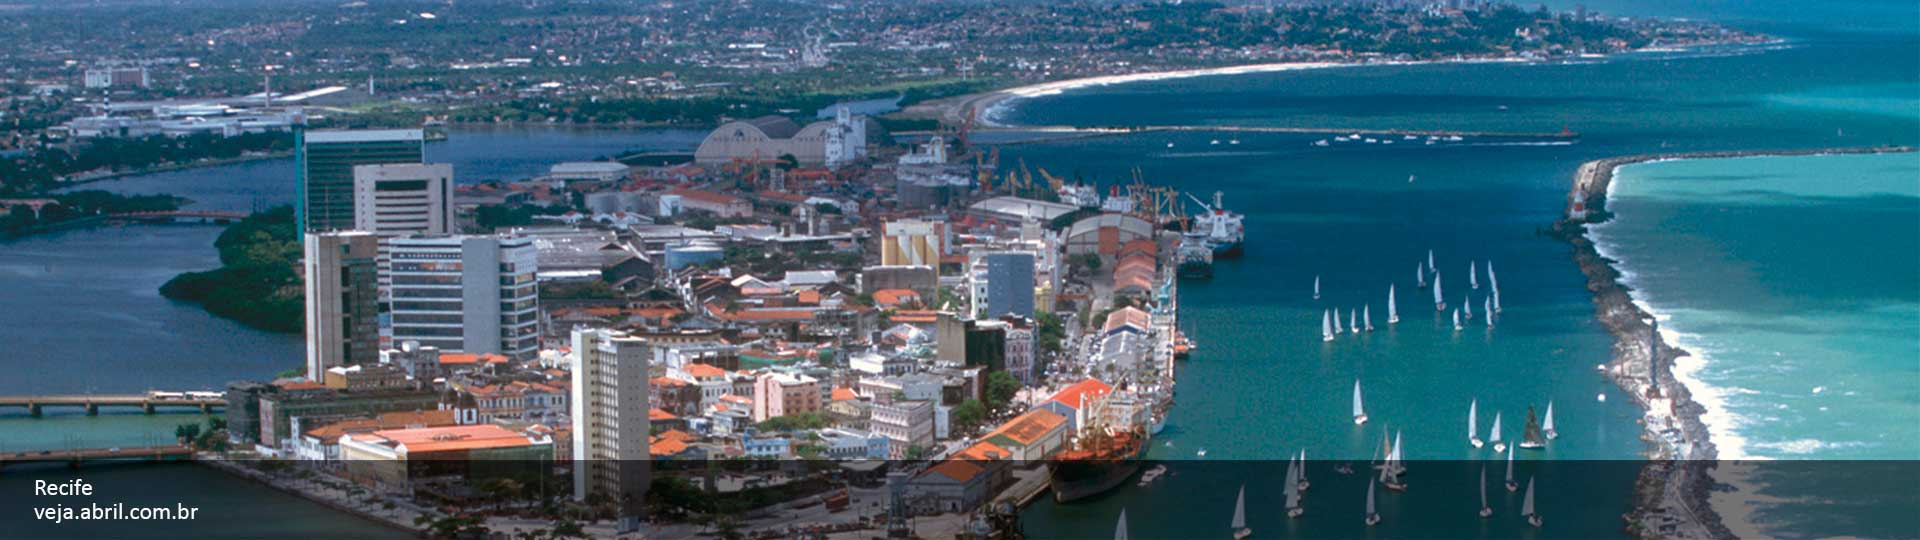 vista-panoramica-de-recife-pe